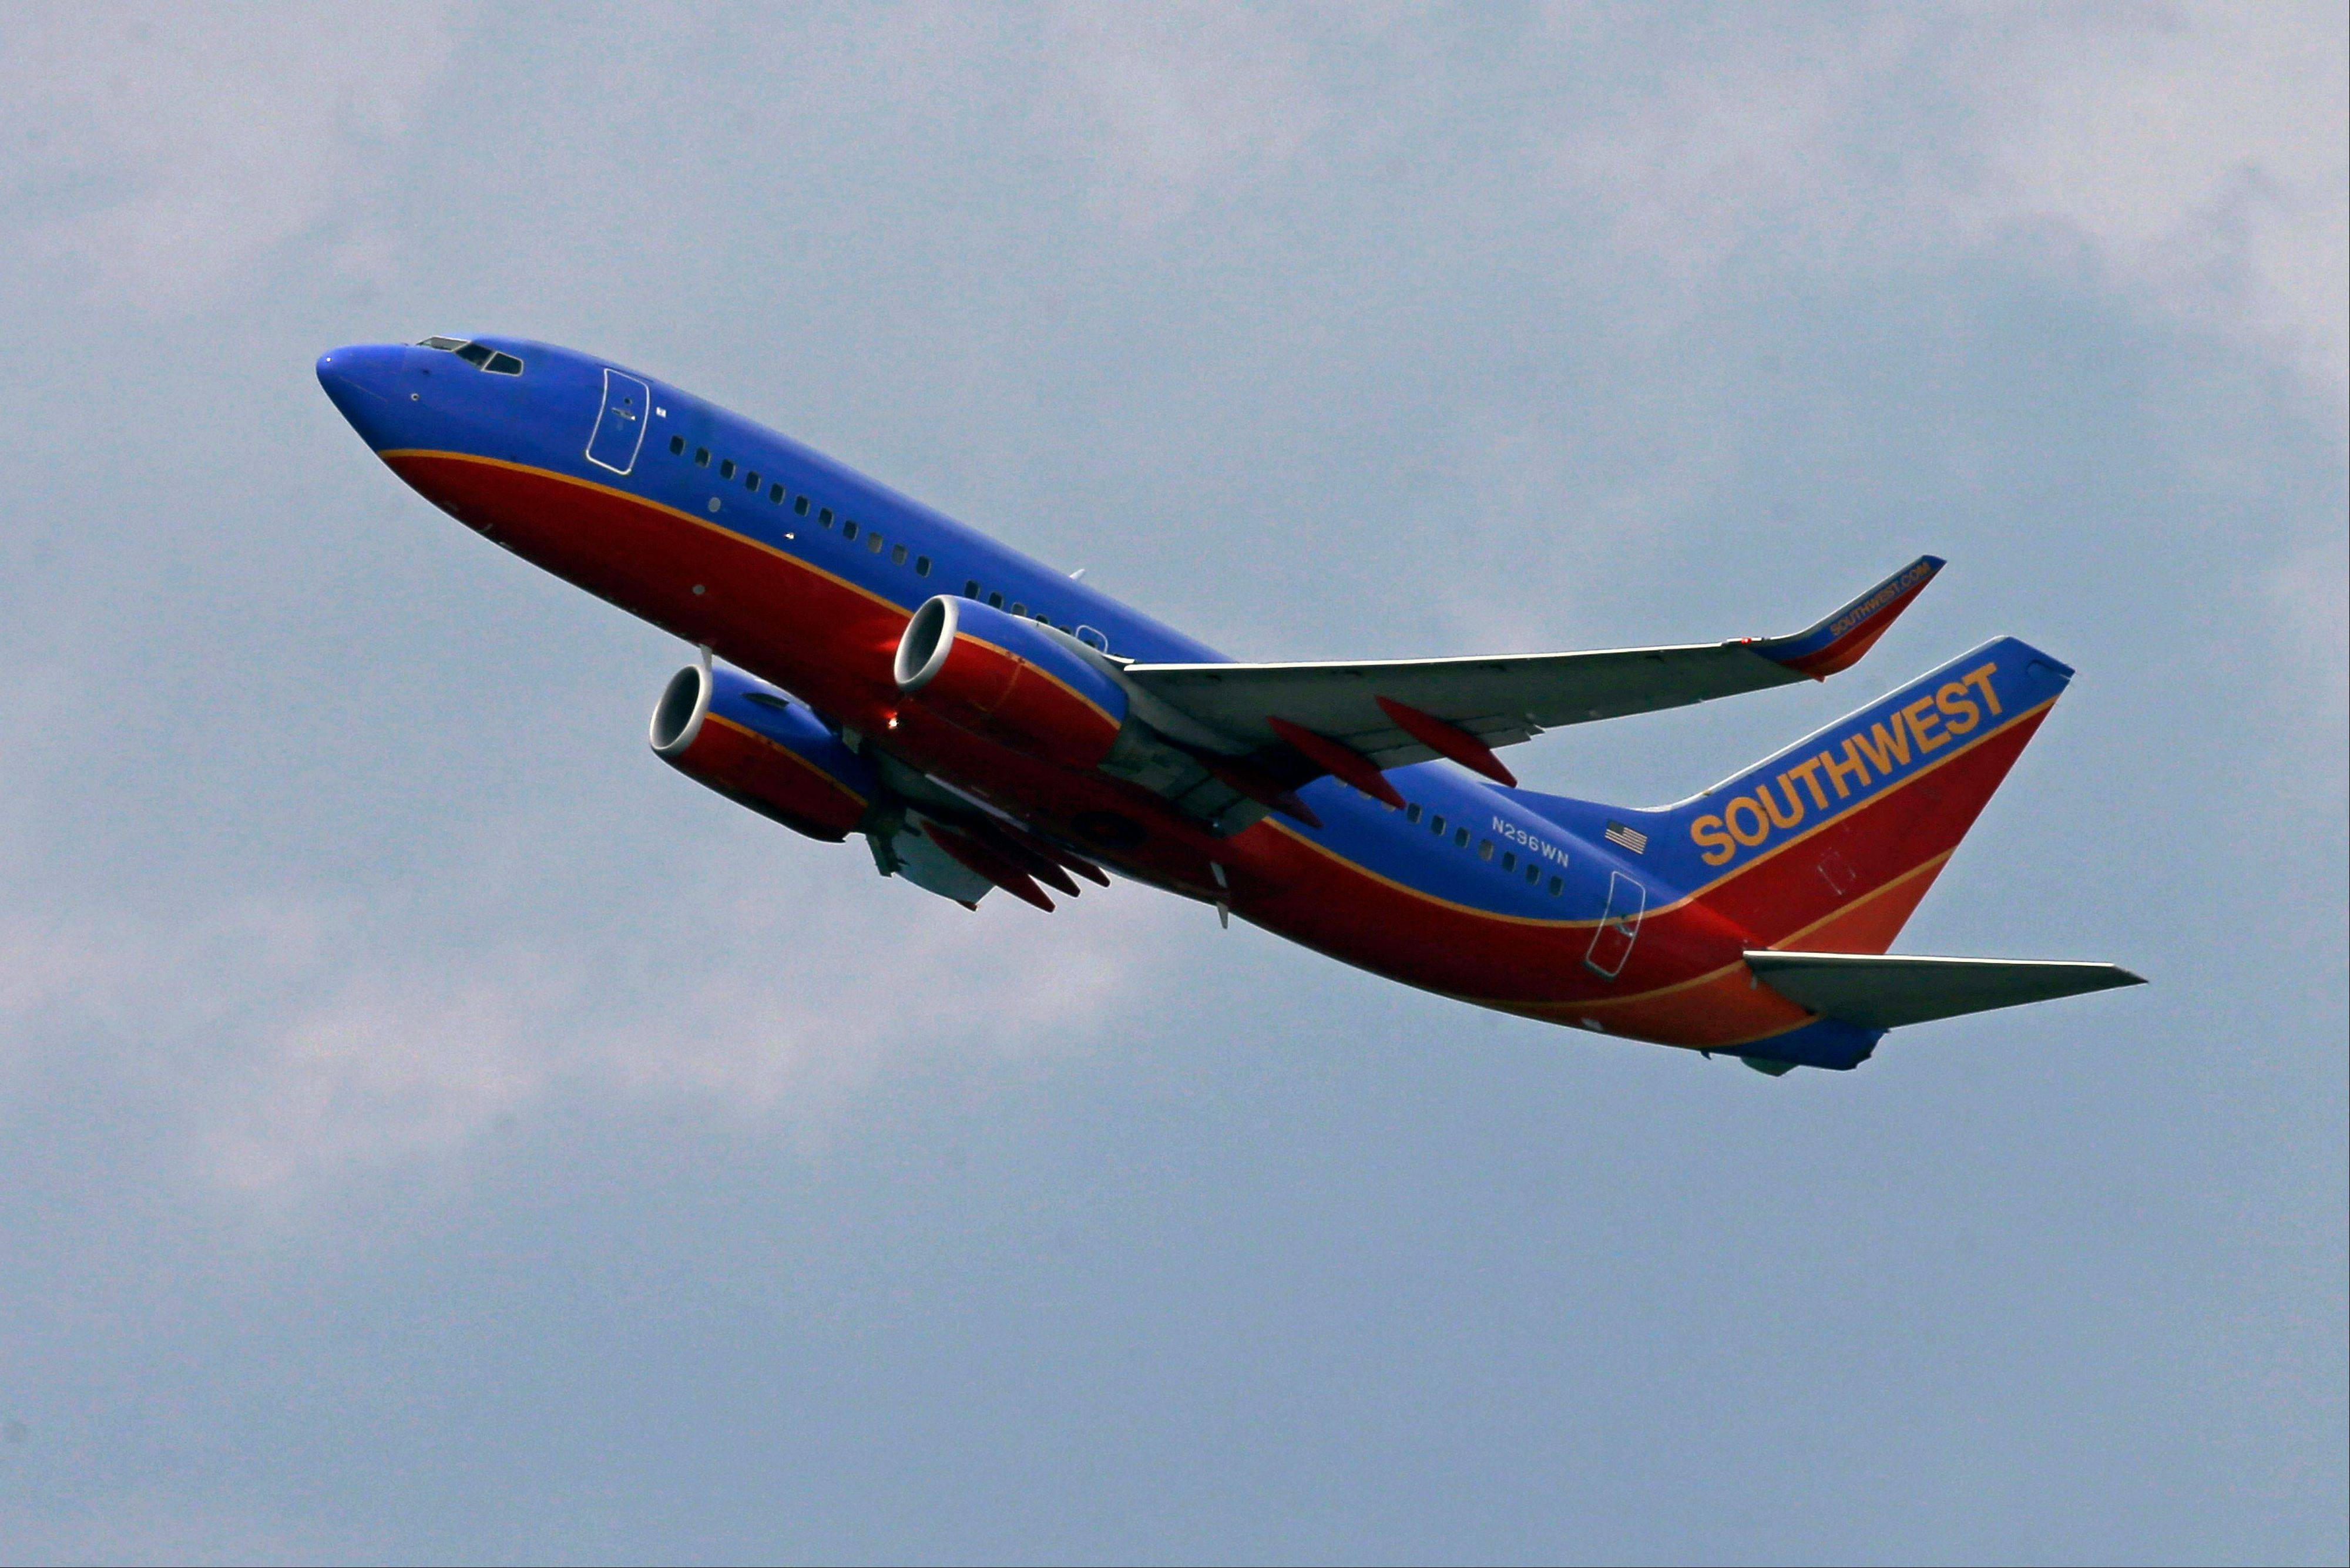 Southwest Airlines is getting a small break at the fuel pump, and that�s helping it beat Wall Street expectations for profit. The airline said Thursday that net income in the second quarter was $224 million, or 31 cents per share.